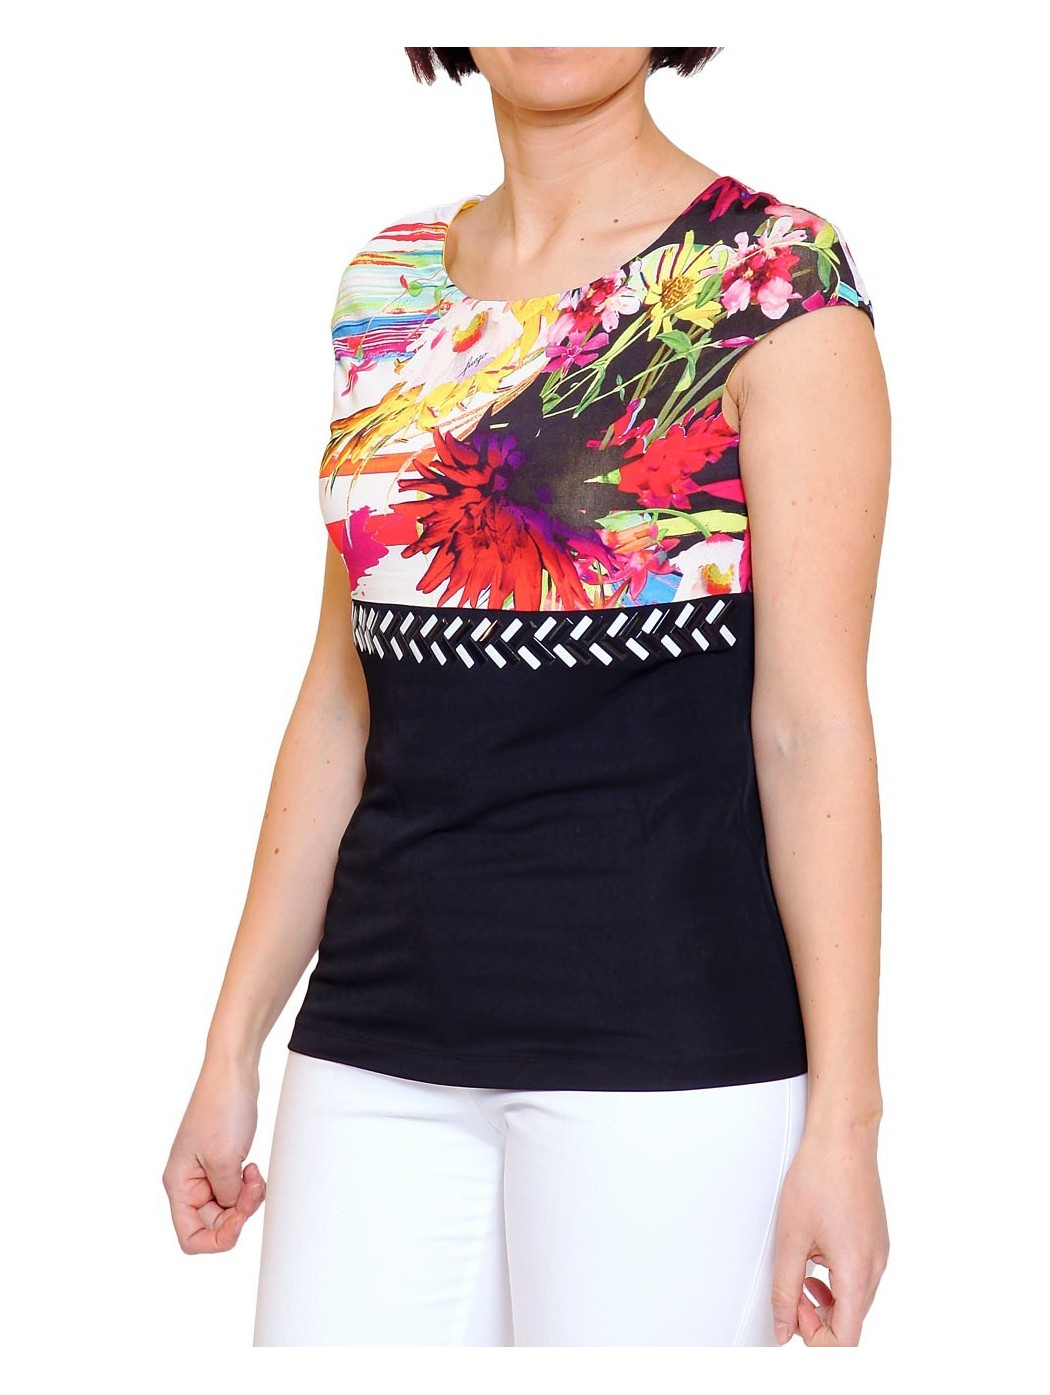 Fuego printed top